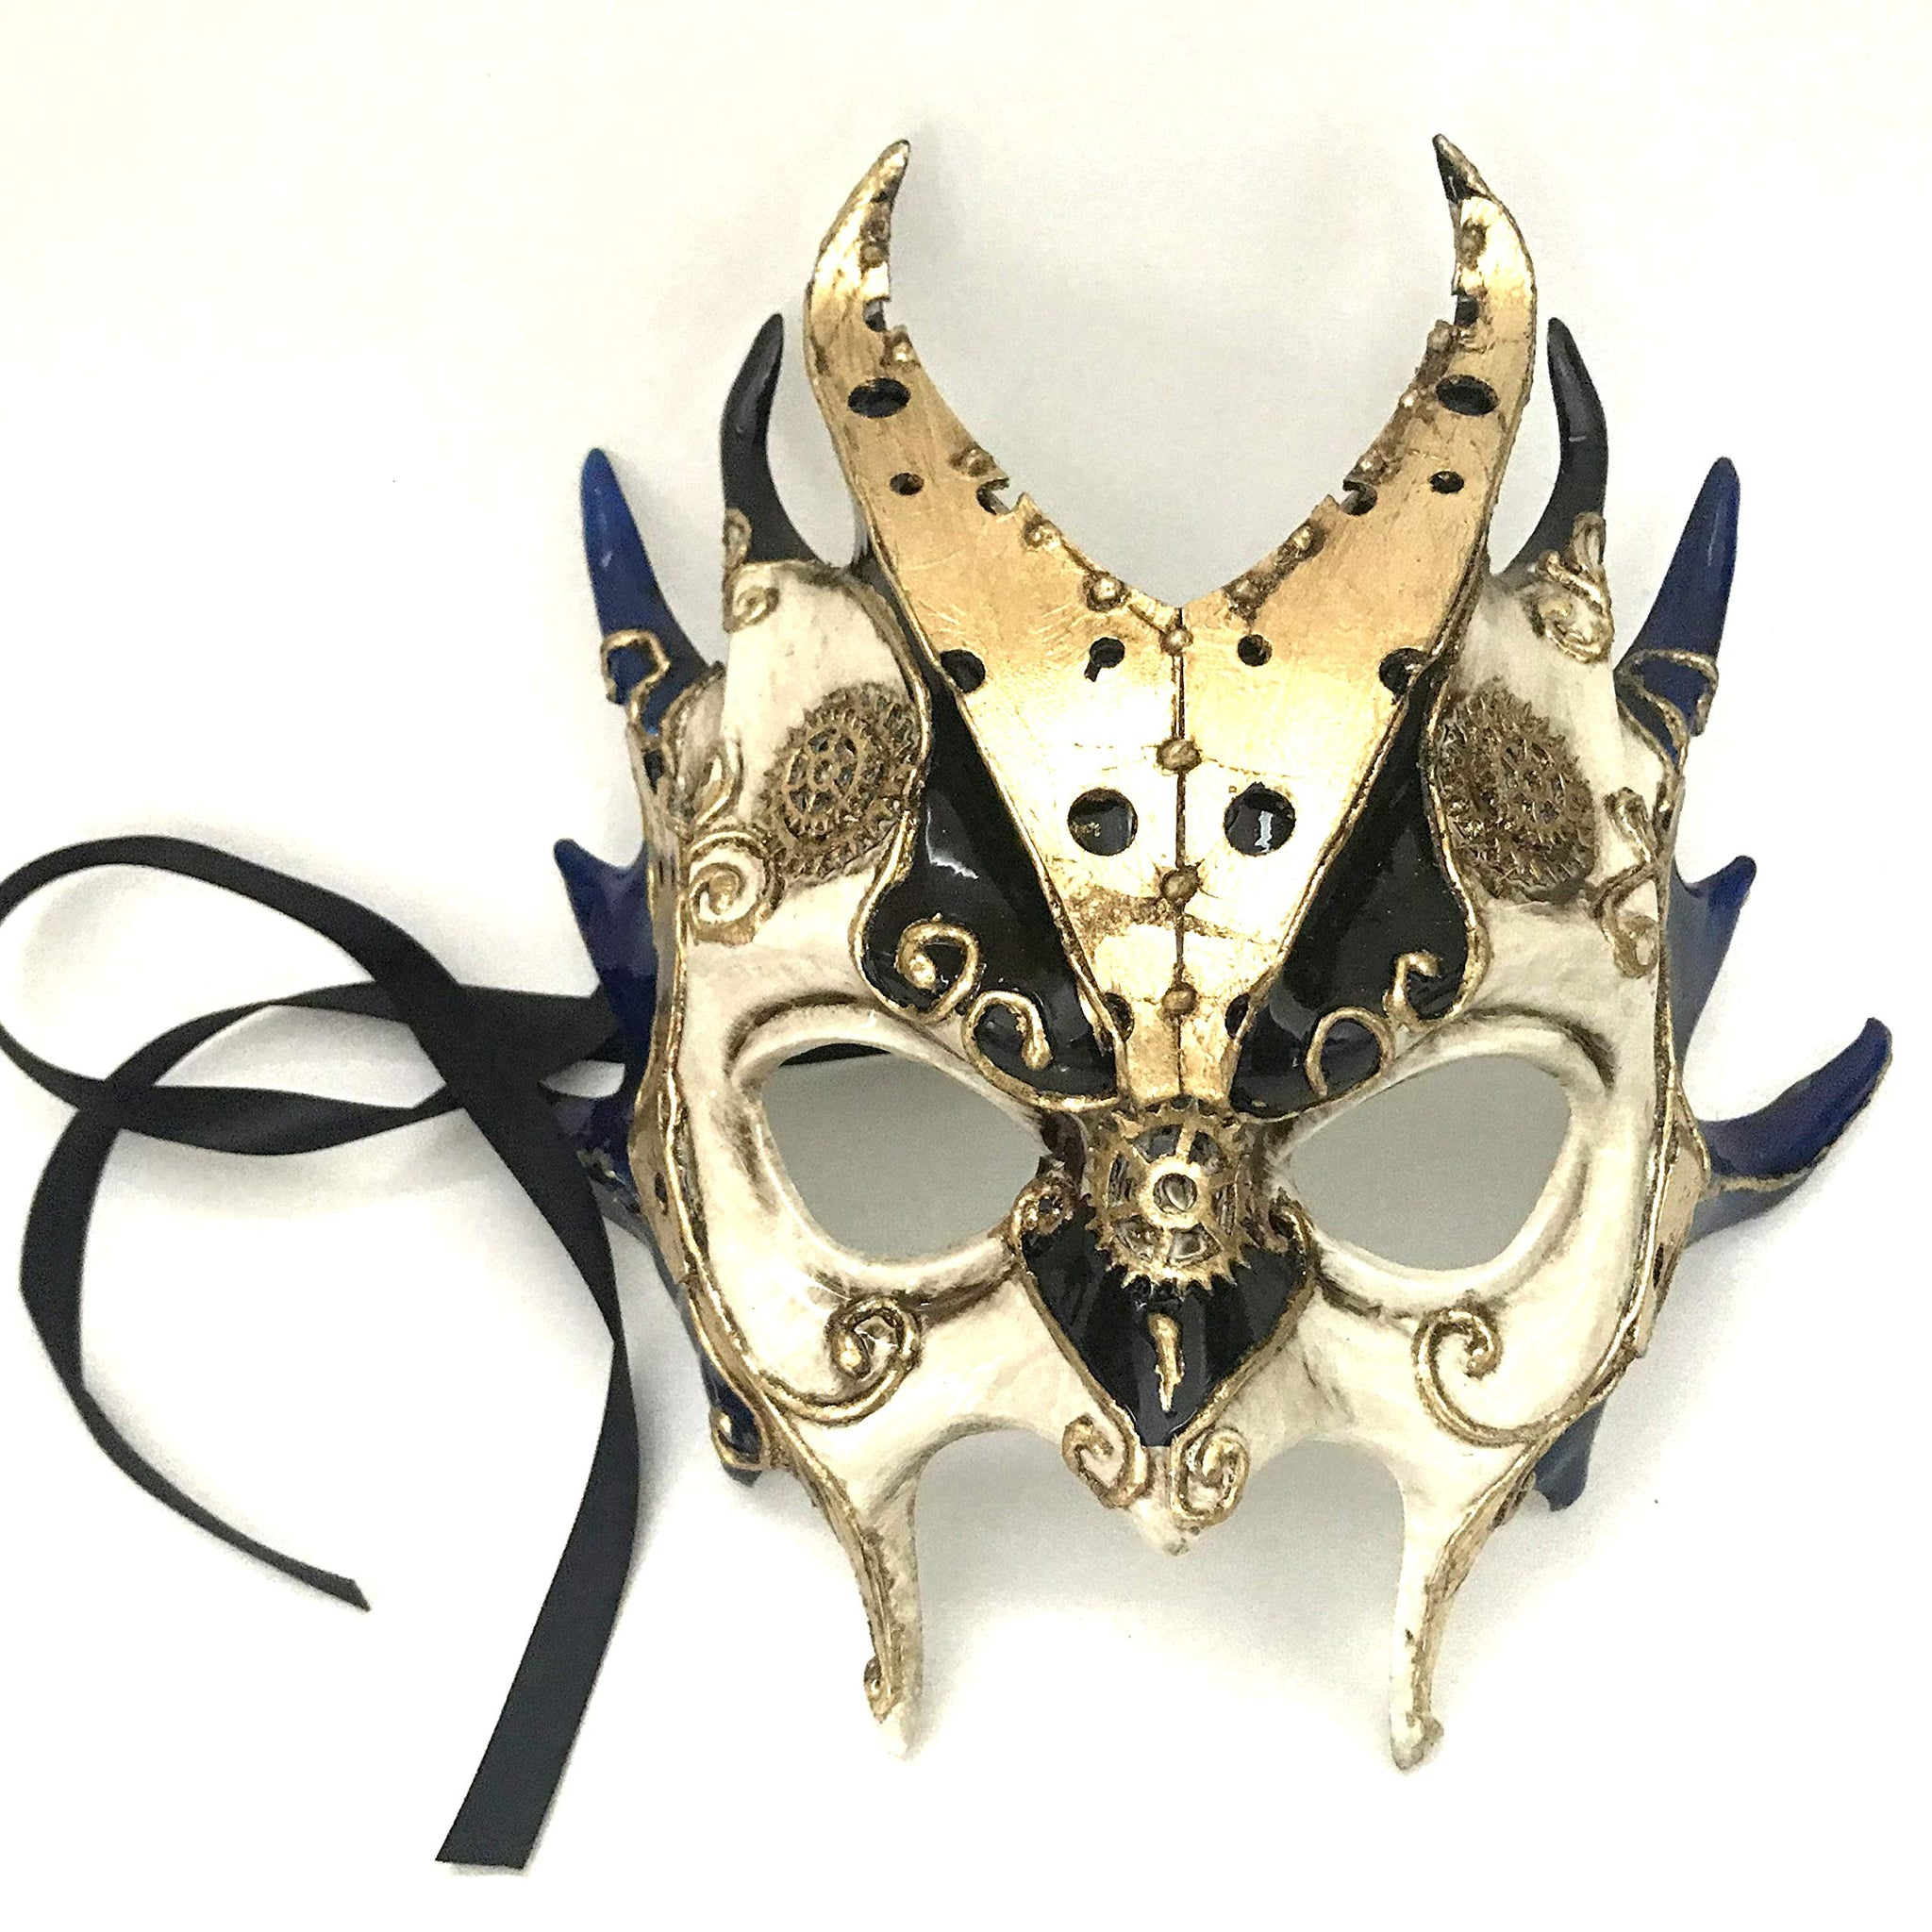 MASQSTUDIO Blue Gold Demon Halloween Devil Masquerade Ball Mask with Horns (Demon) (Pair for 2 Masks)